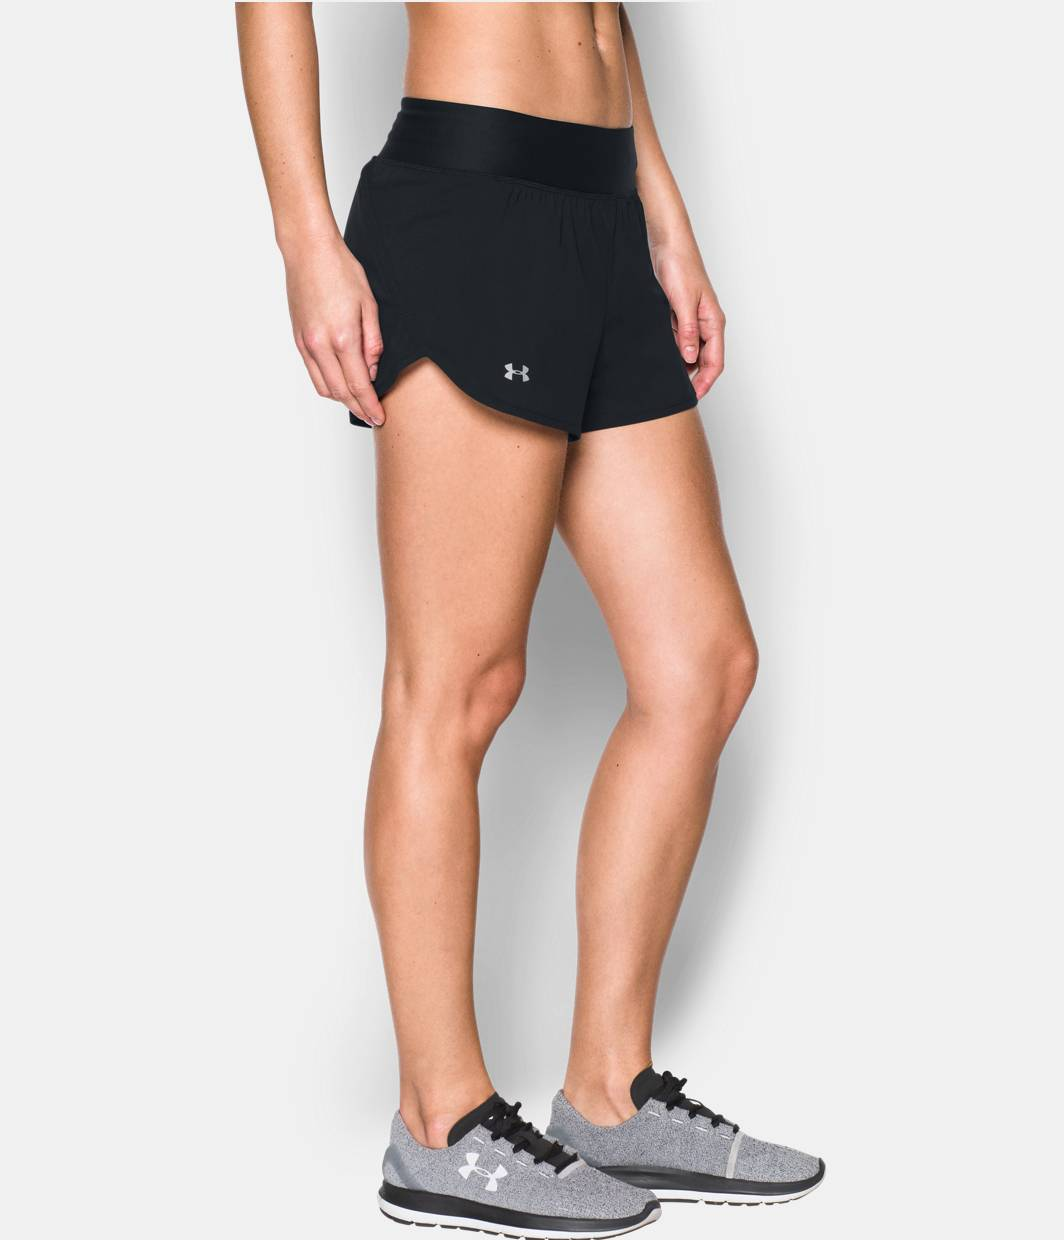 Shop the latest selection of womens under armour clothing at Lady Foot Locker. With stores across the nation, and some of the hottest brands and latest trends, Lady Footlocker makes it easy to find great footwear and apparel for women all in one place. Free shipping on select products.